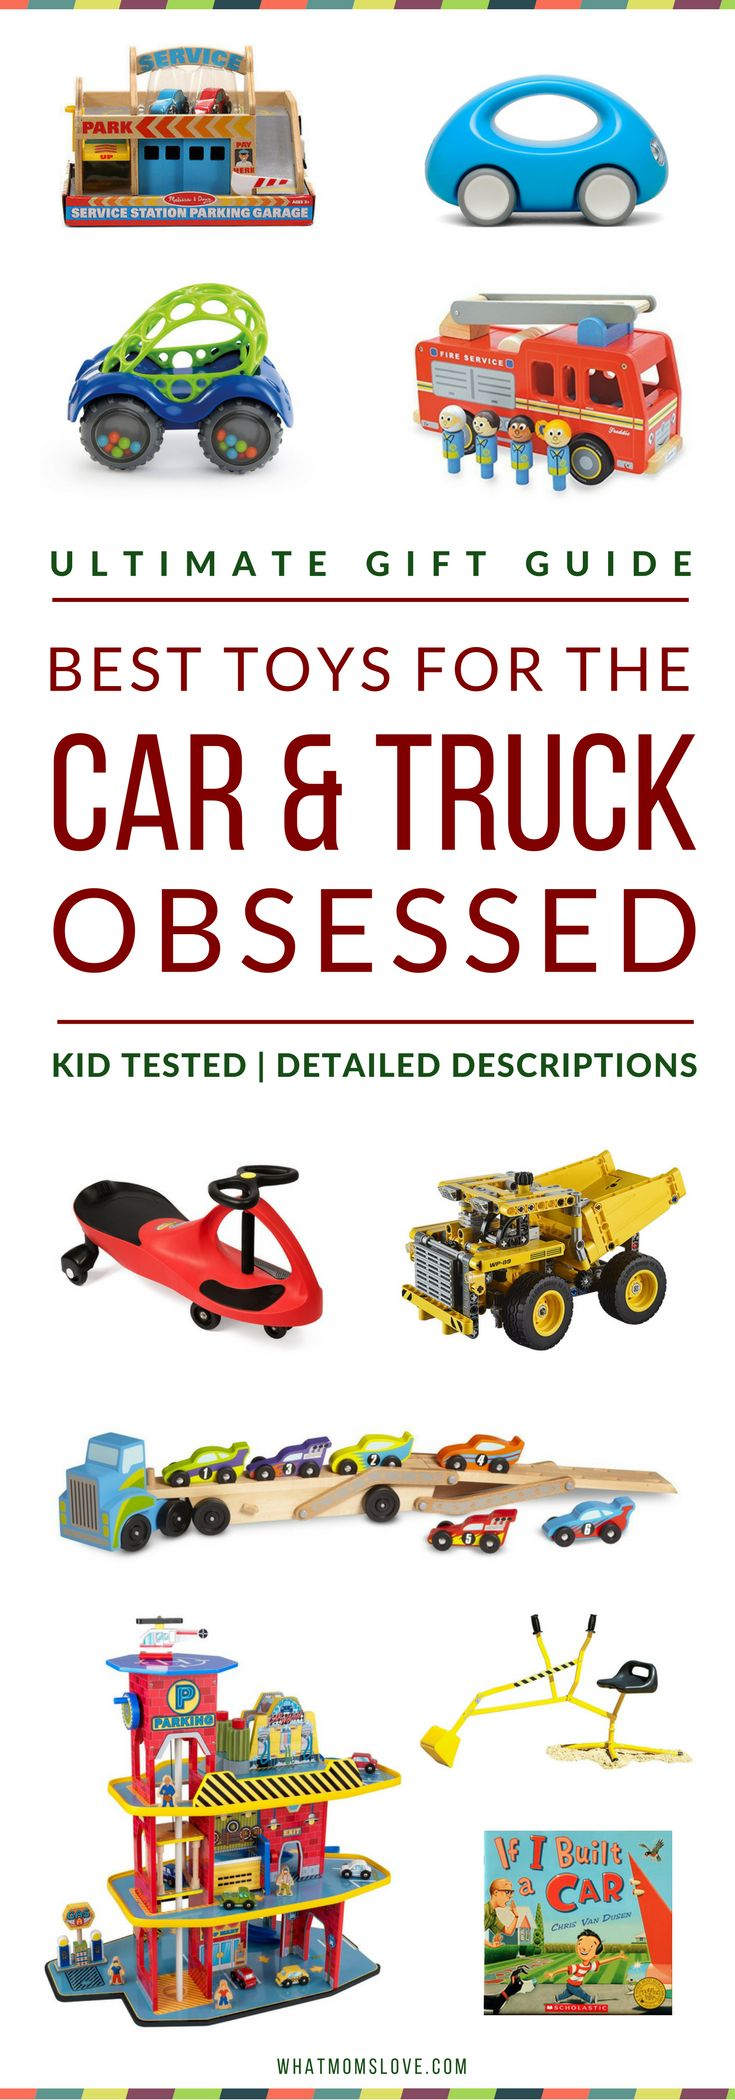 Boy Toys Description : Best gifts for boys ideas on pinterest magic